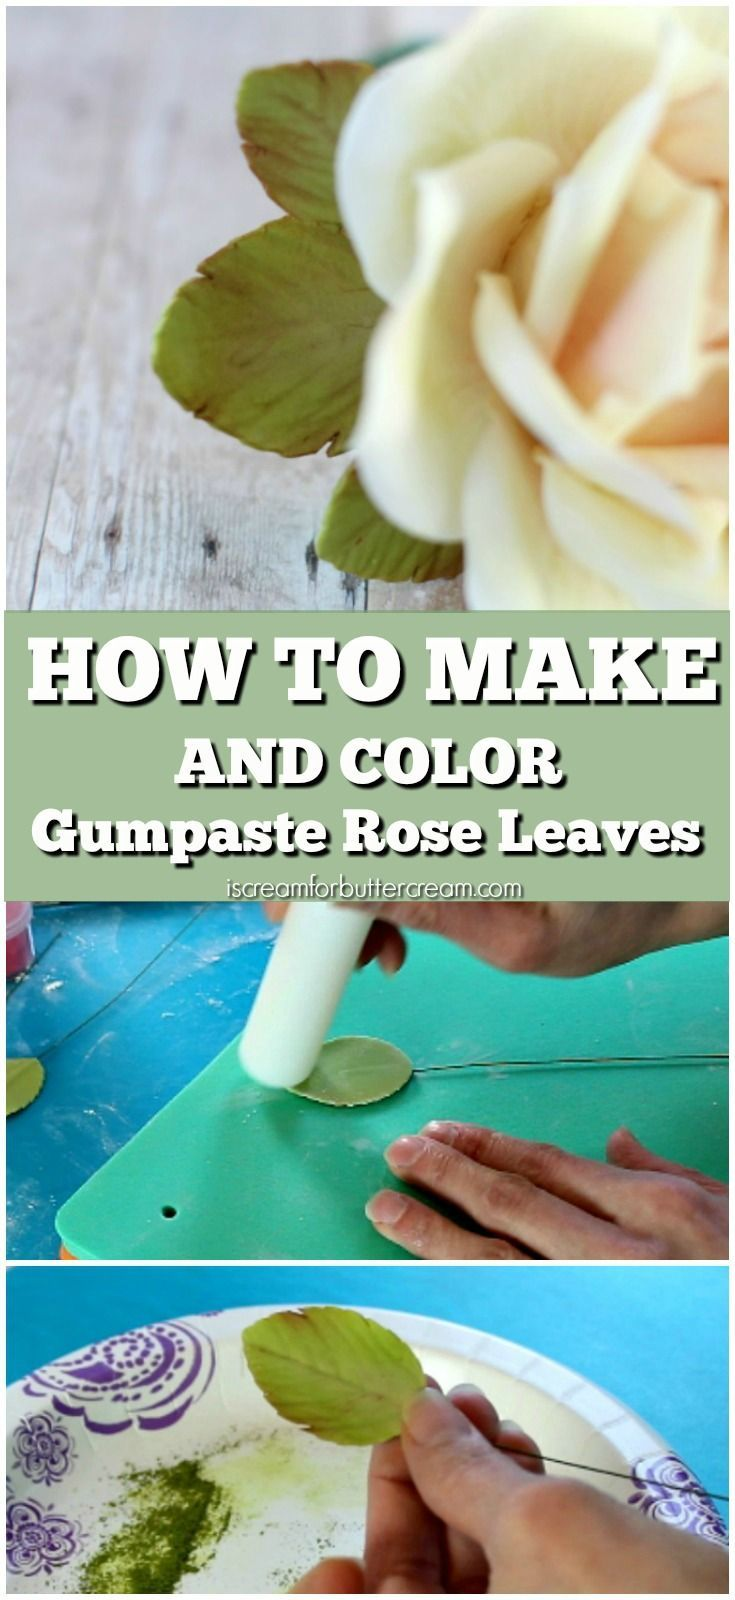 Learn how to make realistic looking gumpaste leaves and how to color them so they really bring life to your gumpaste roses.